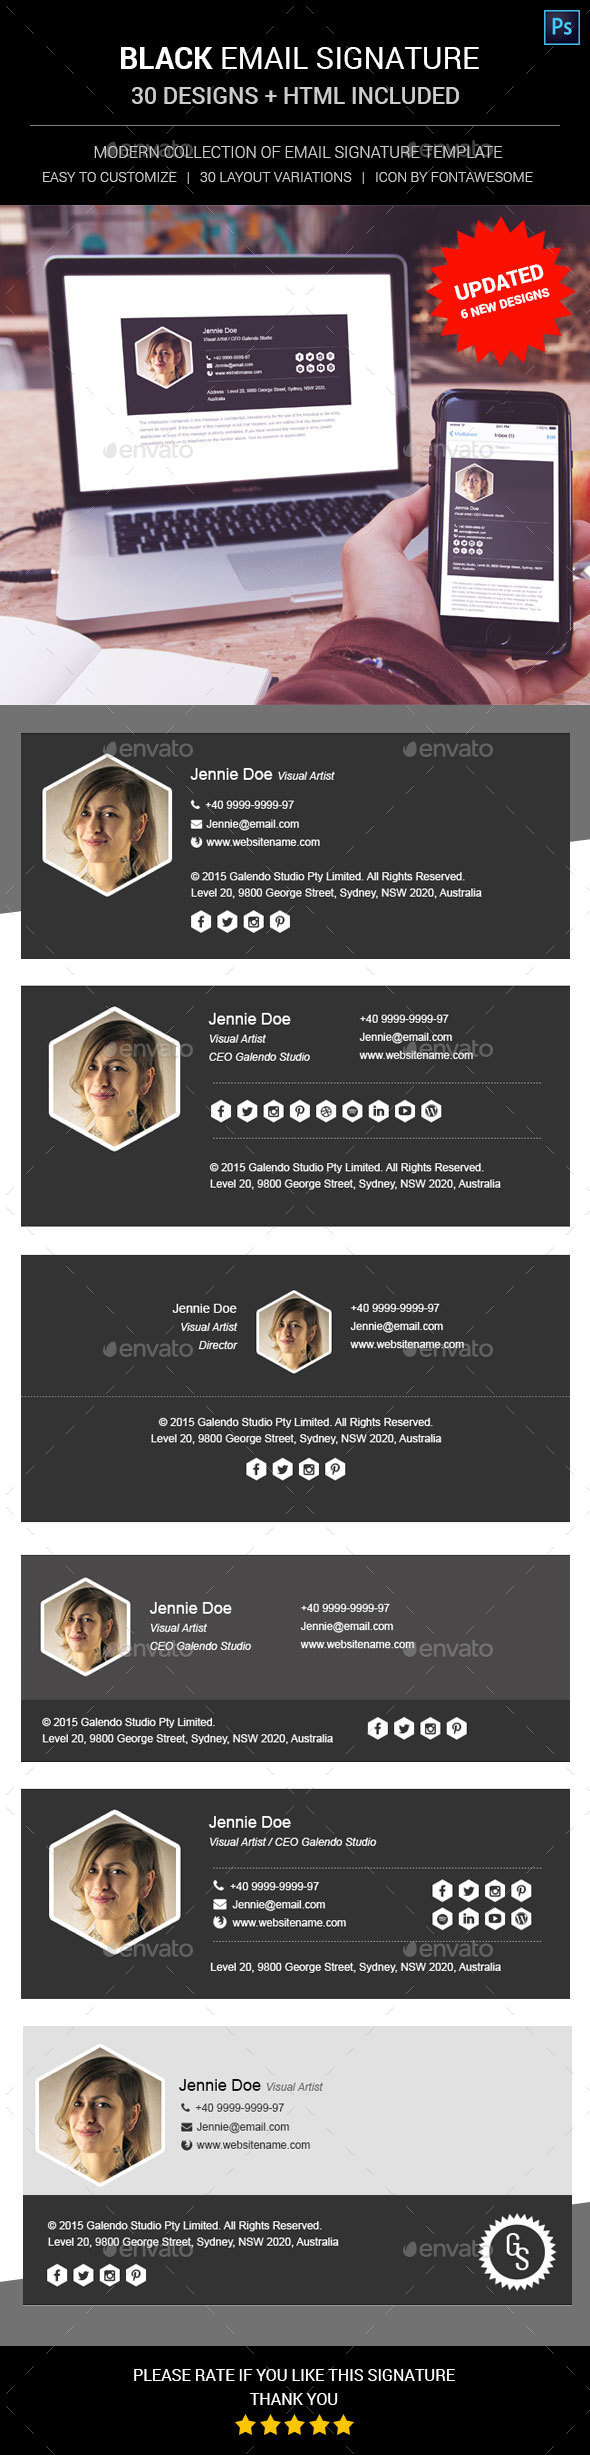 Black Email Signature by sinzo | GraphicRiver